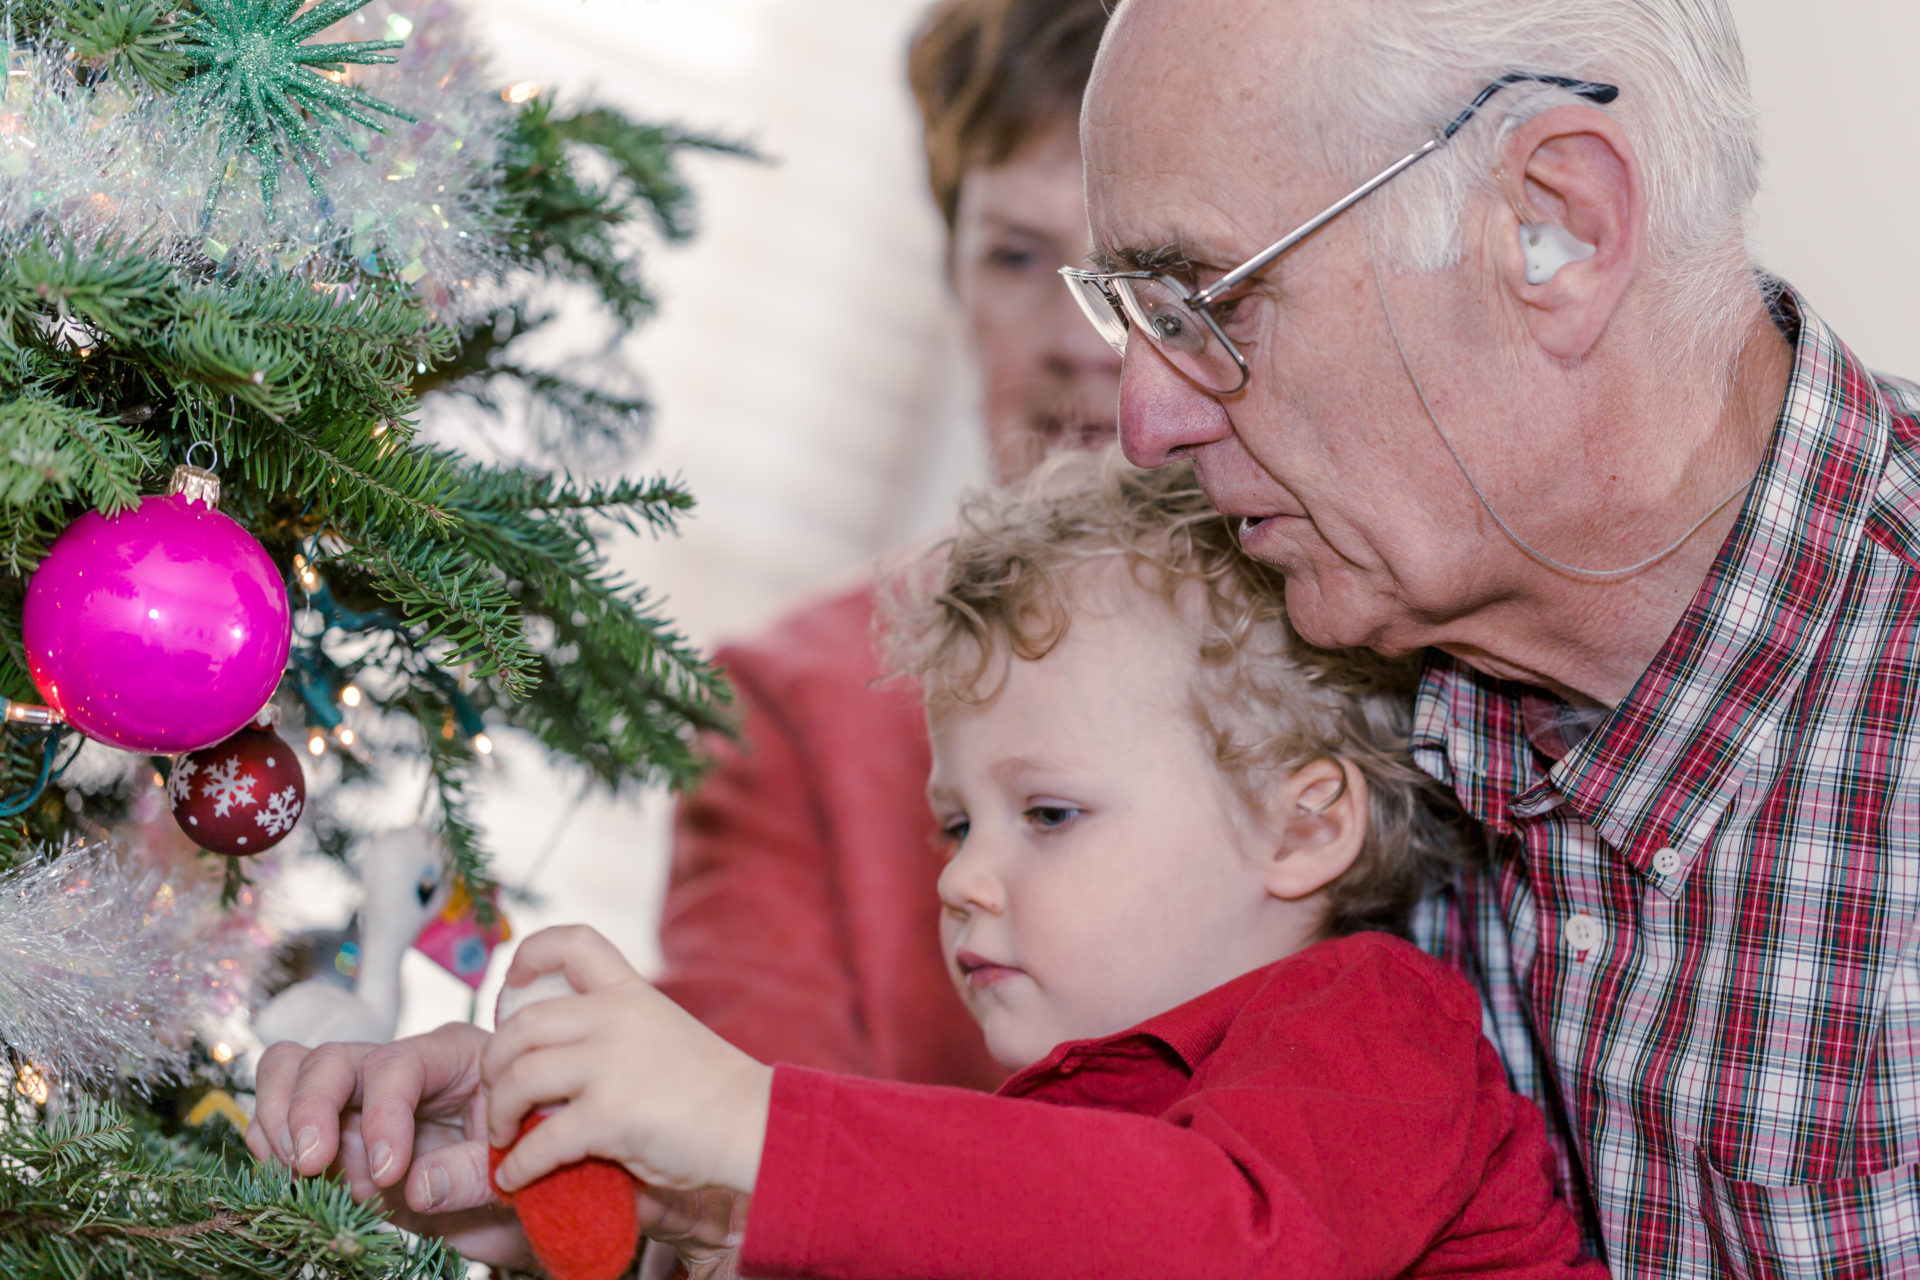 Grandfather lifting grandson to decorate Christmas tree